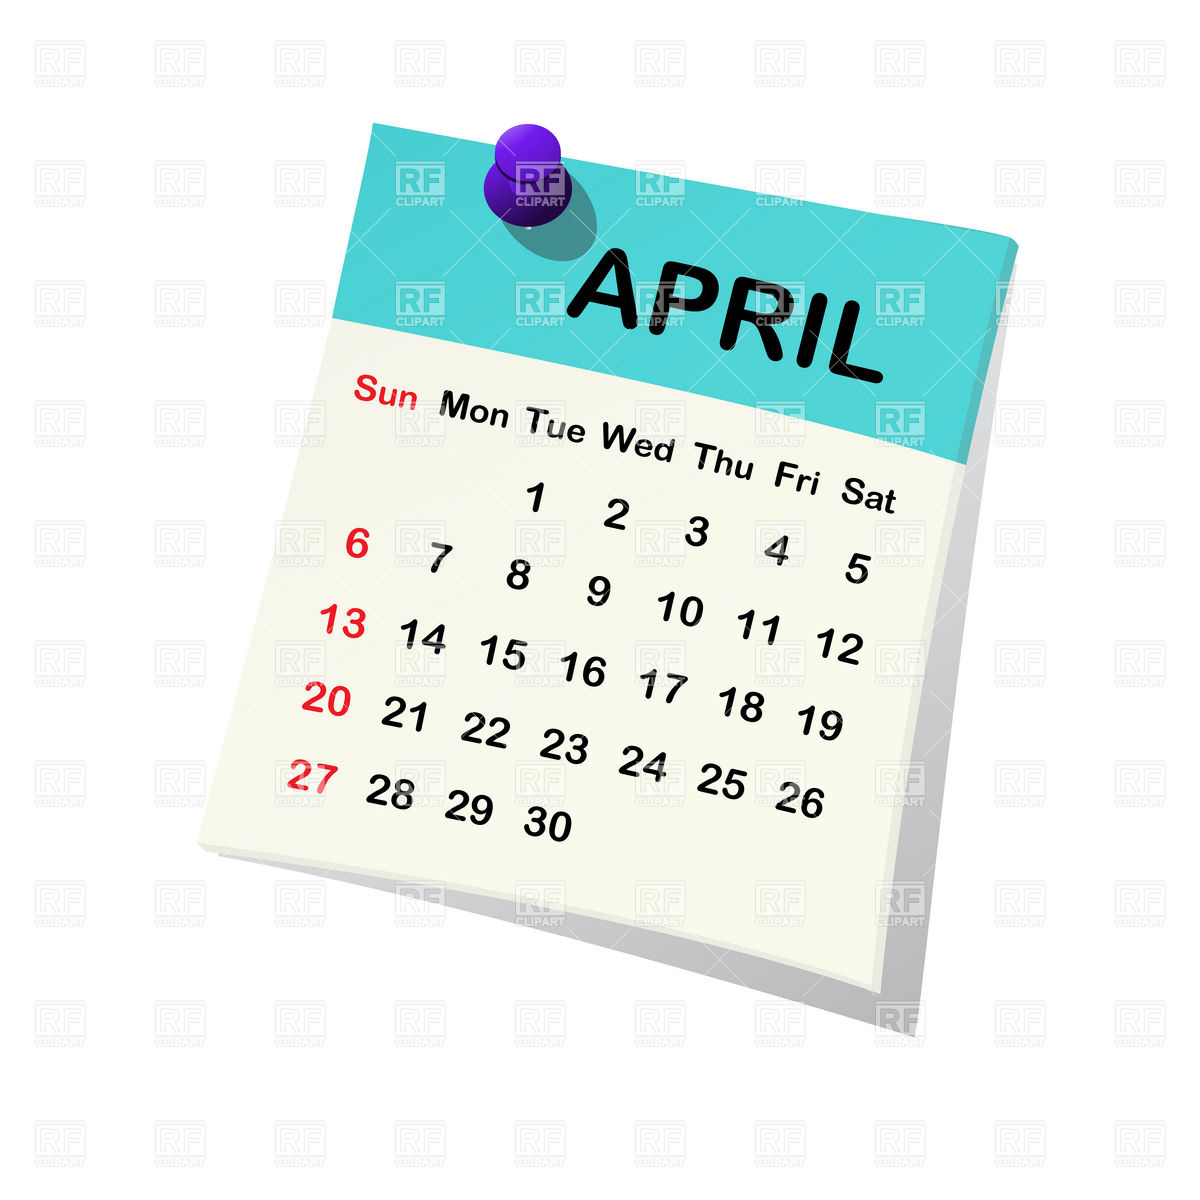 April 2014 calendar clipart svg freeuse stock April 2014 calendar clipart - ClipartFest svg freeuse stock